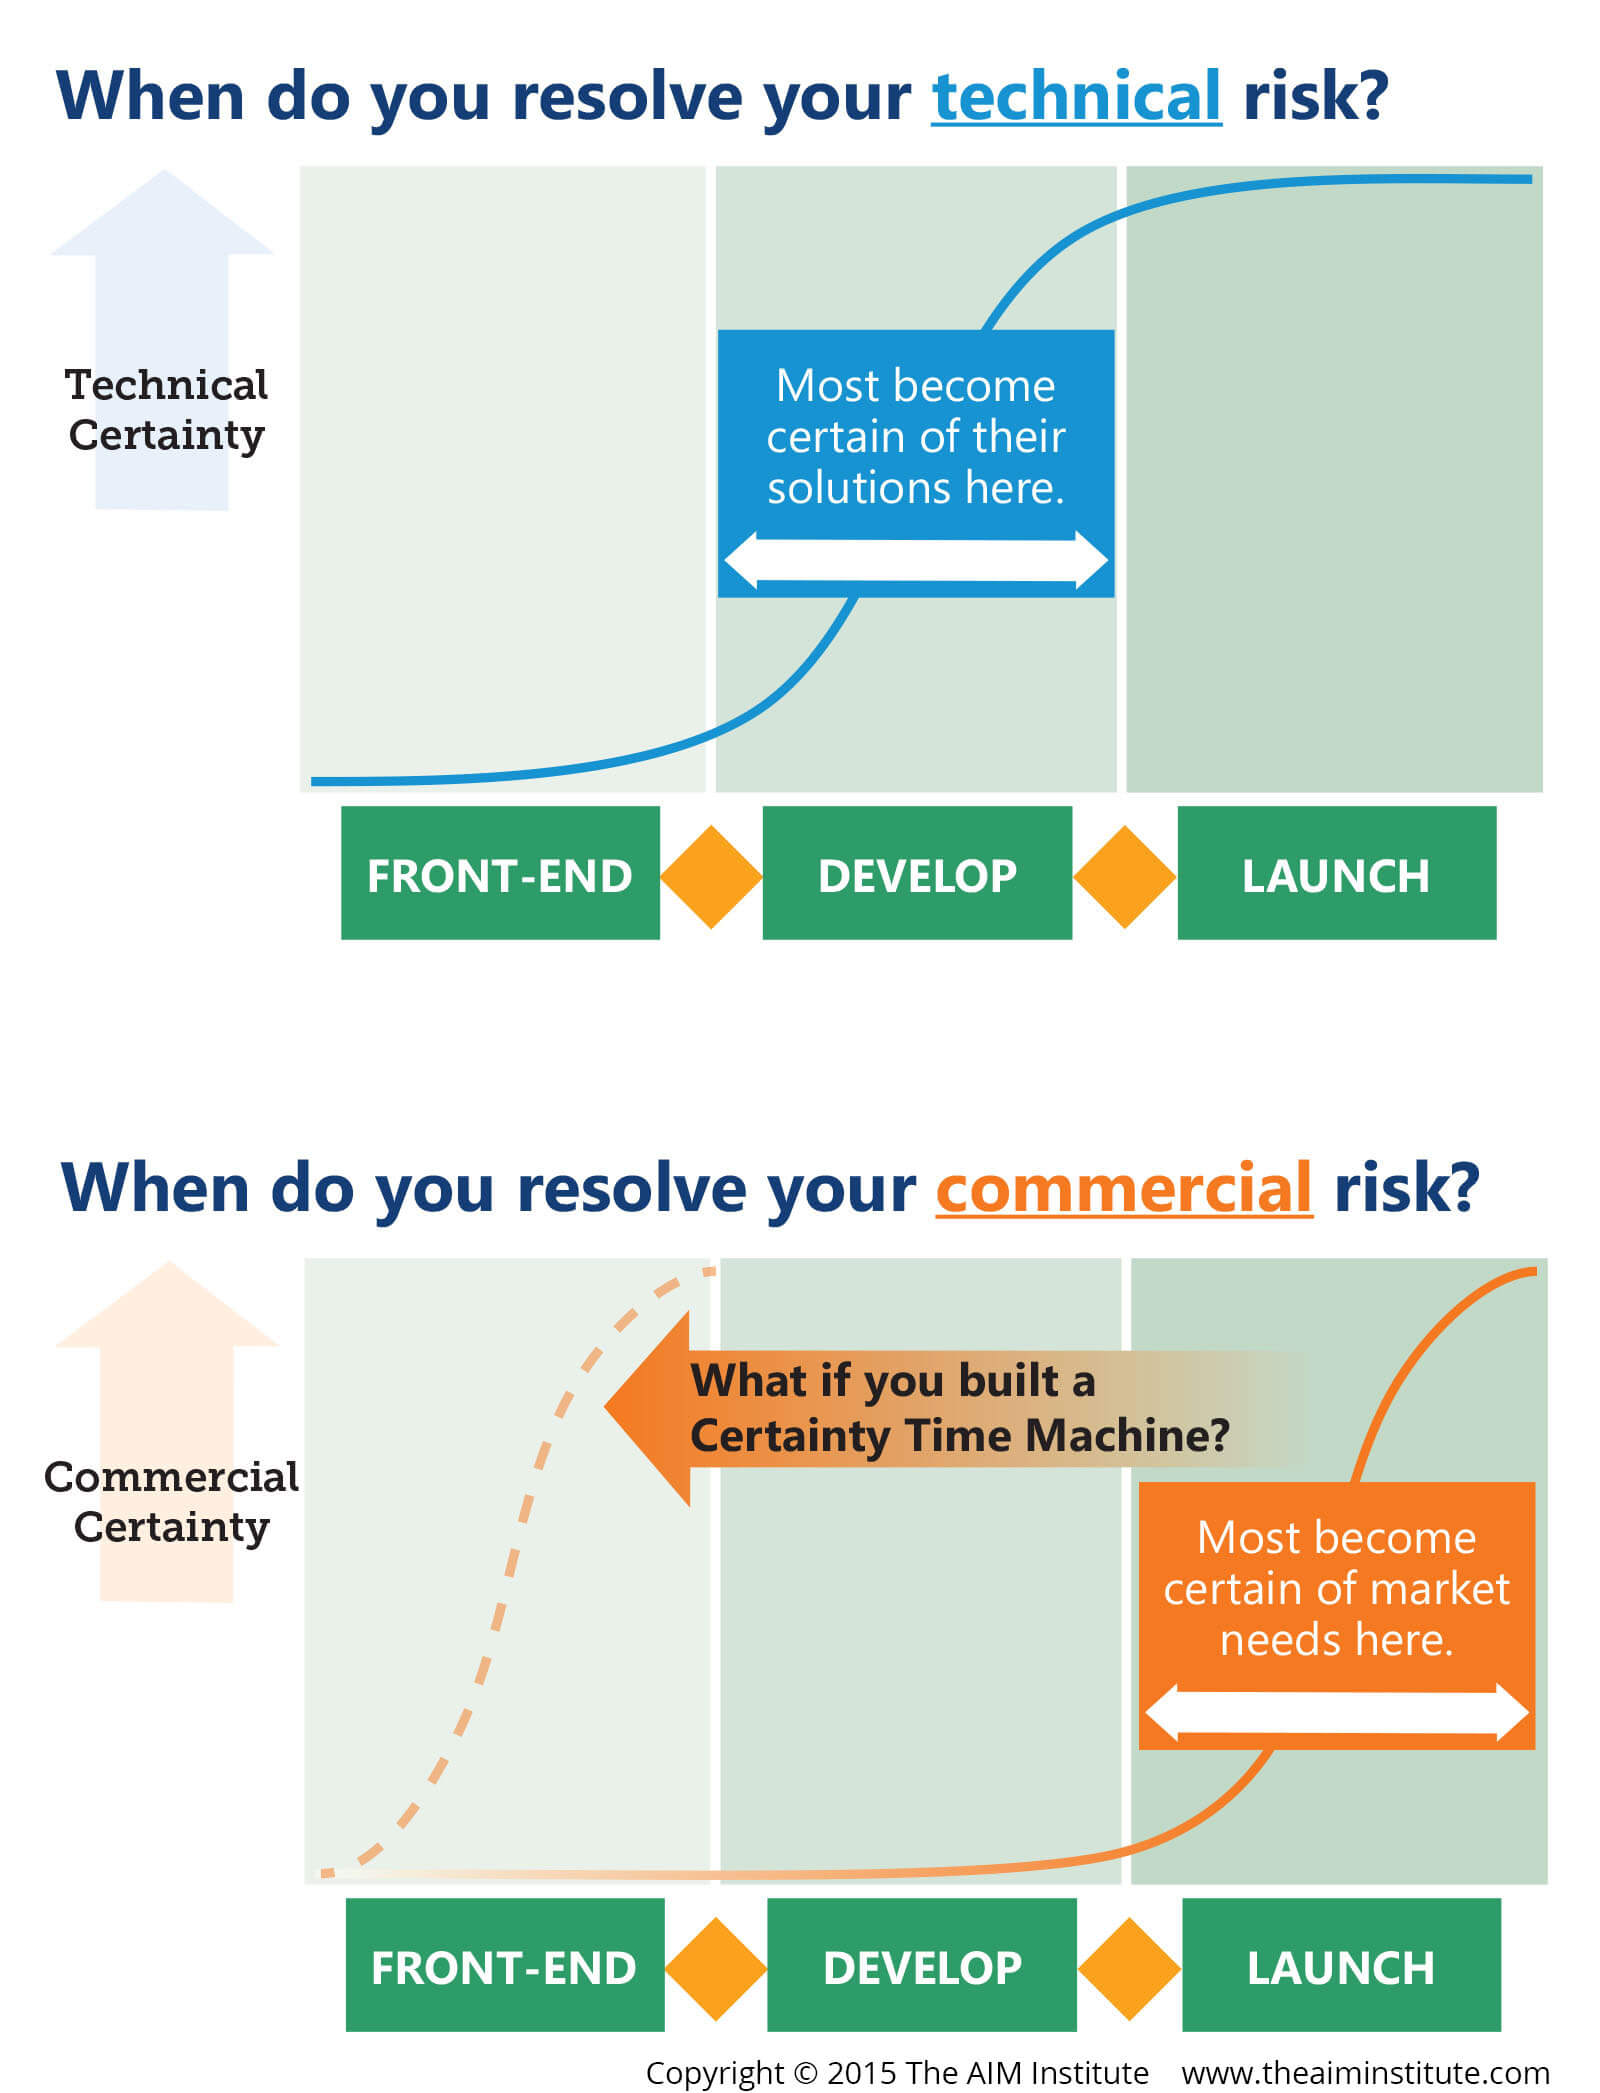 NPD Risk Types: When Do You Resolve Technical and Commercial NPD Risk